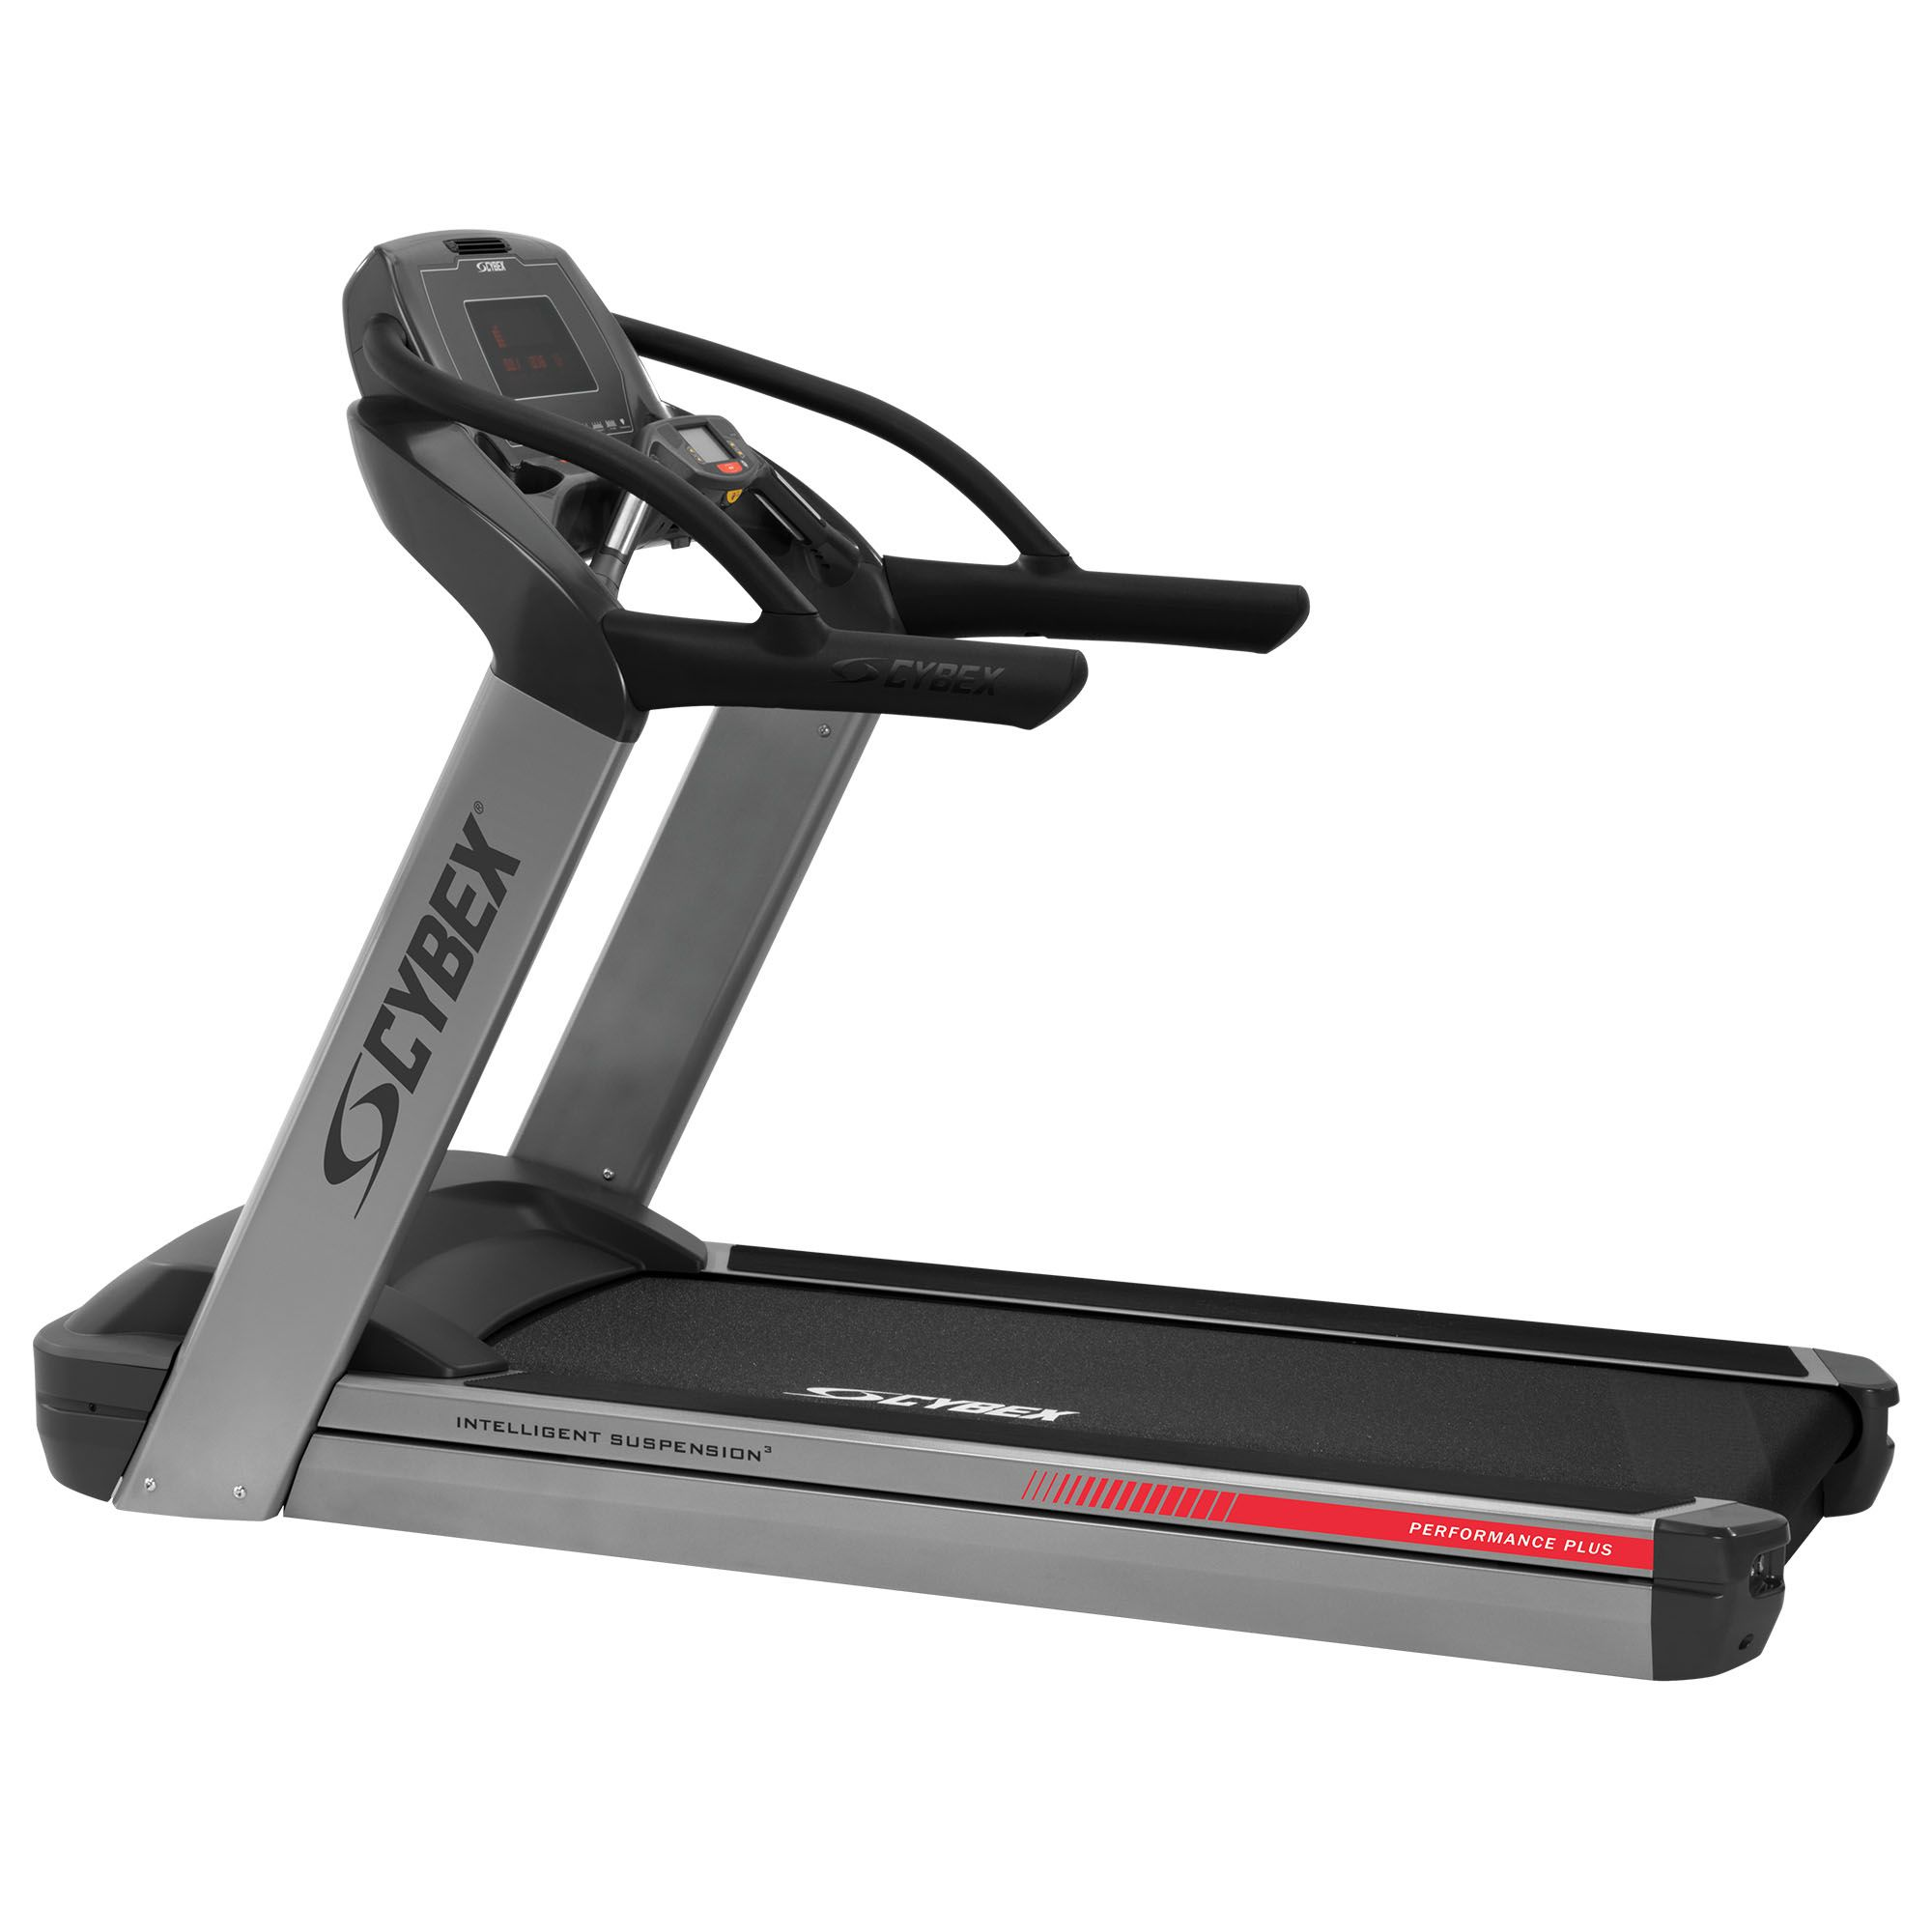 Cybex 750t Treadmill Out Of Order: Cybex 790T Treadmill With E3 View Embedded Monitor